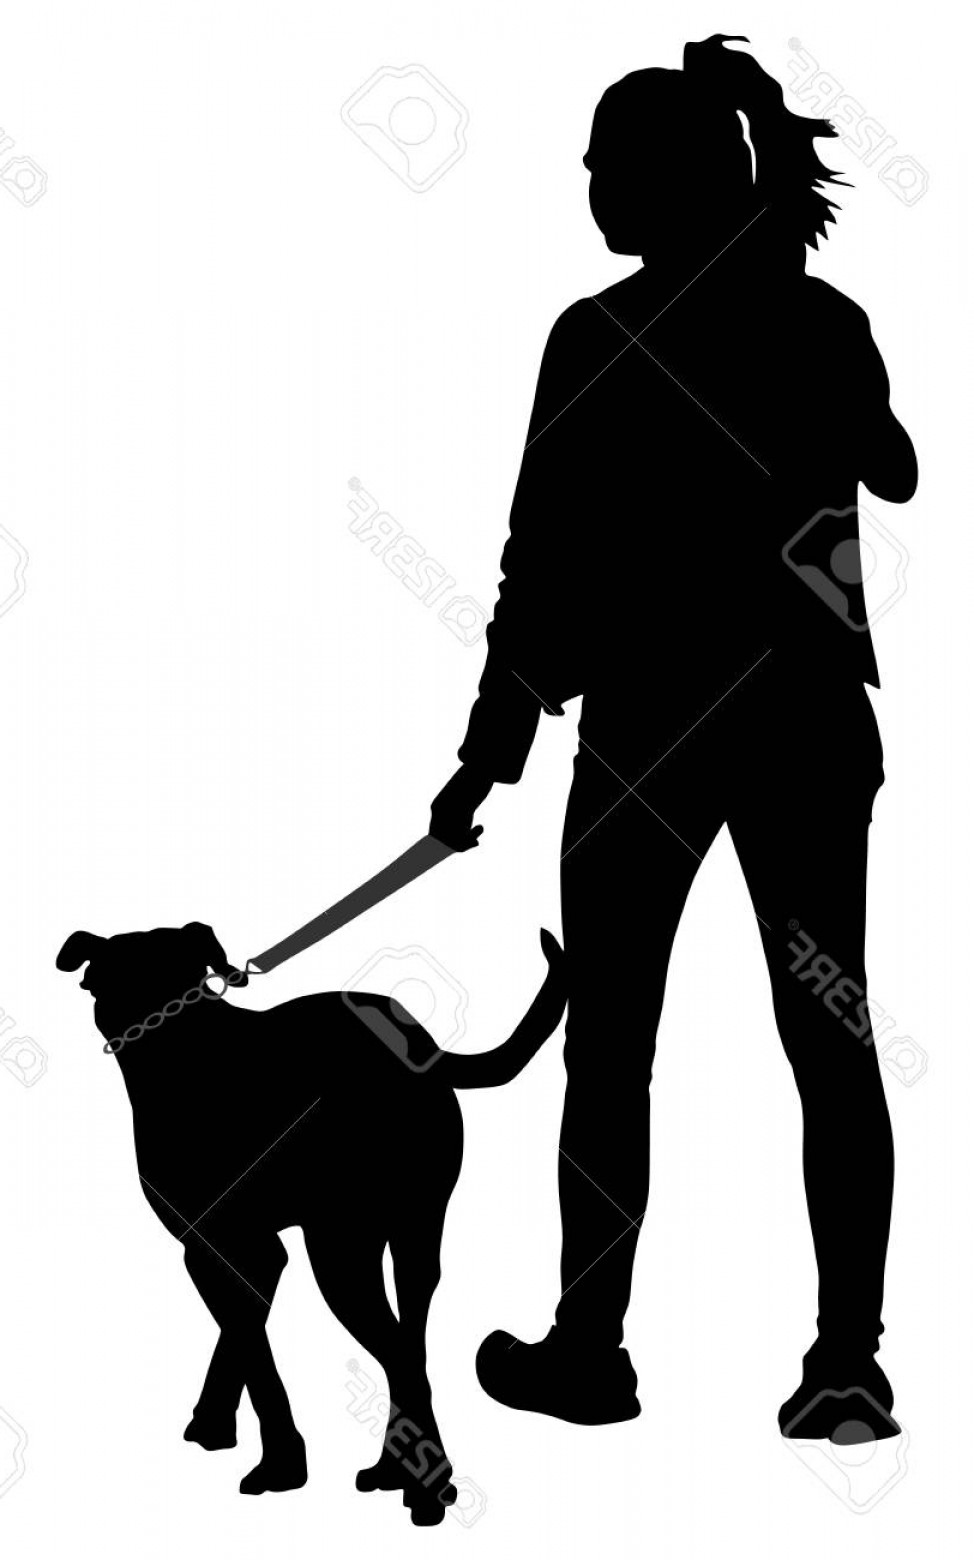 Vector Silhouette Dog Walk: Photostock Vector Owner Lady And Dog Walking In The City Woman Walking With Dog Vector Silhouette Illustration Isolate